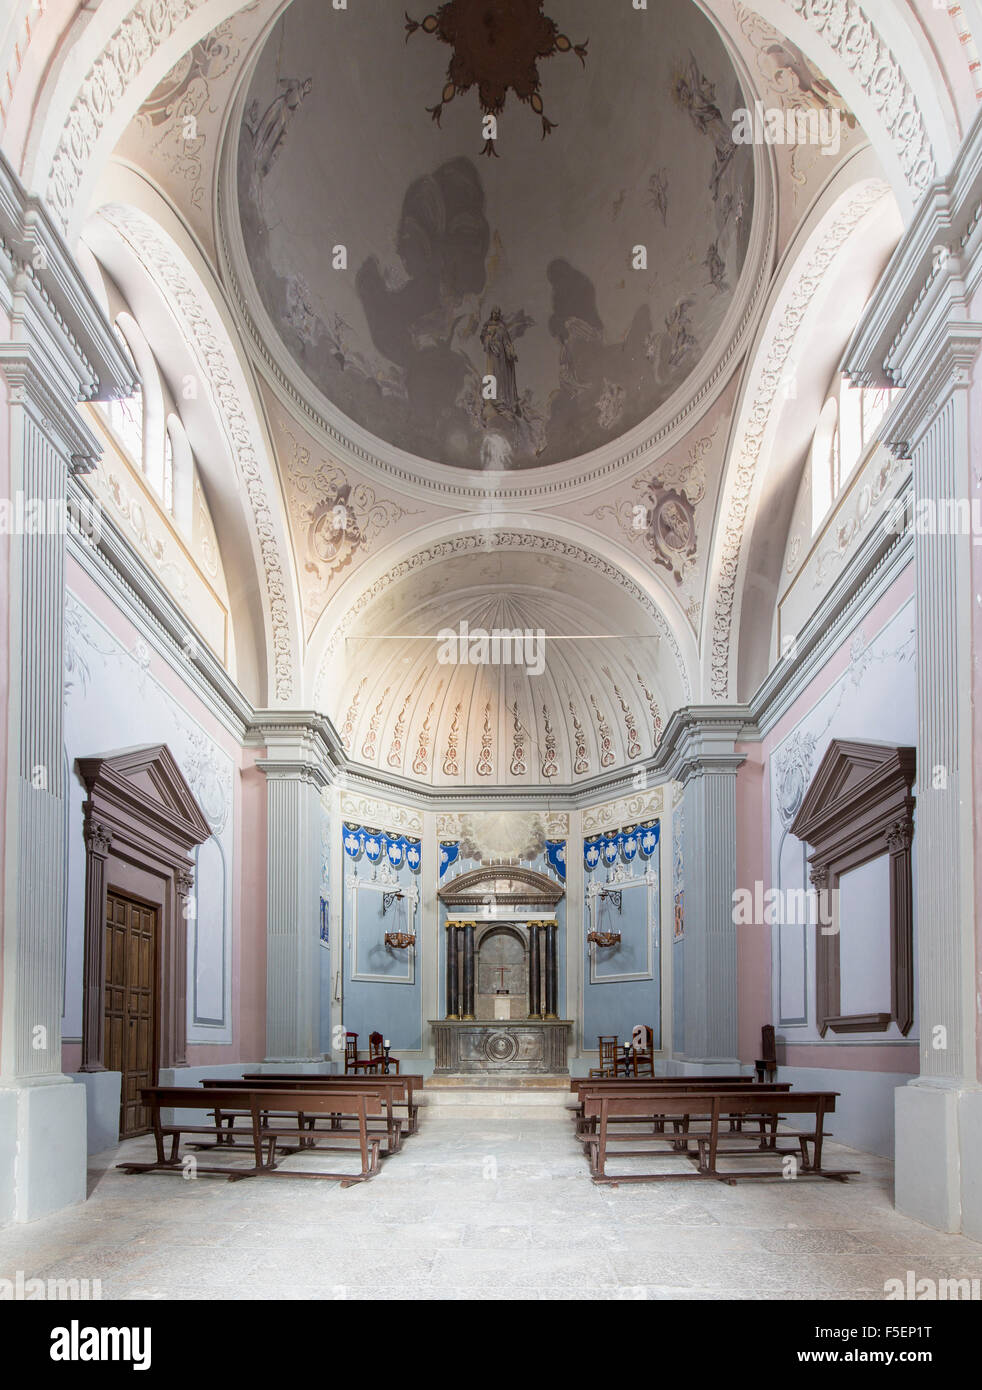 Small Catholic church in a typical rural village, Spain - Stock Image